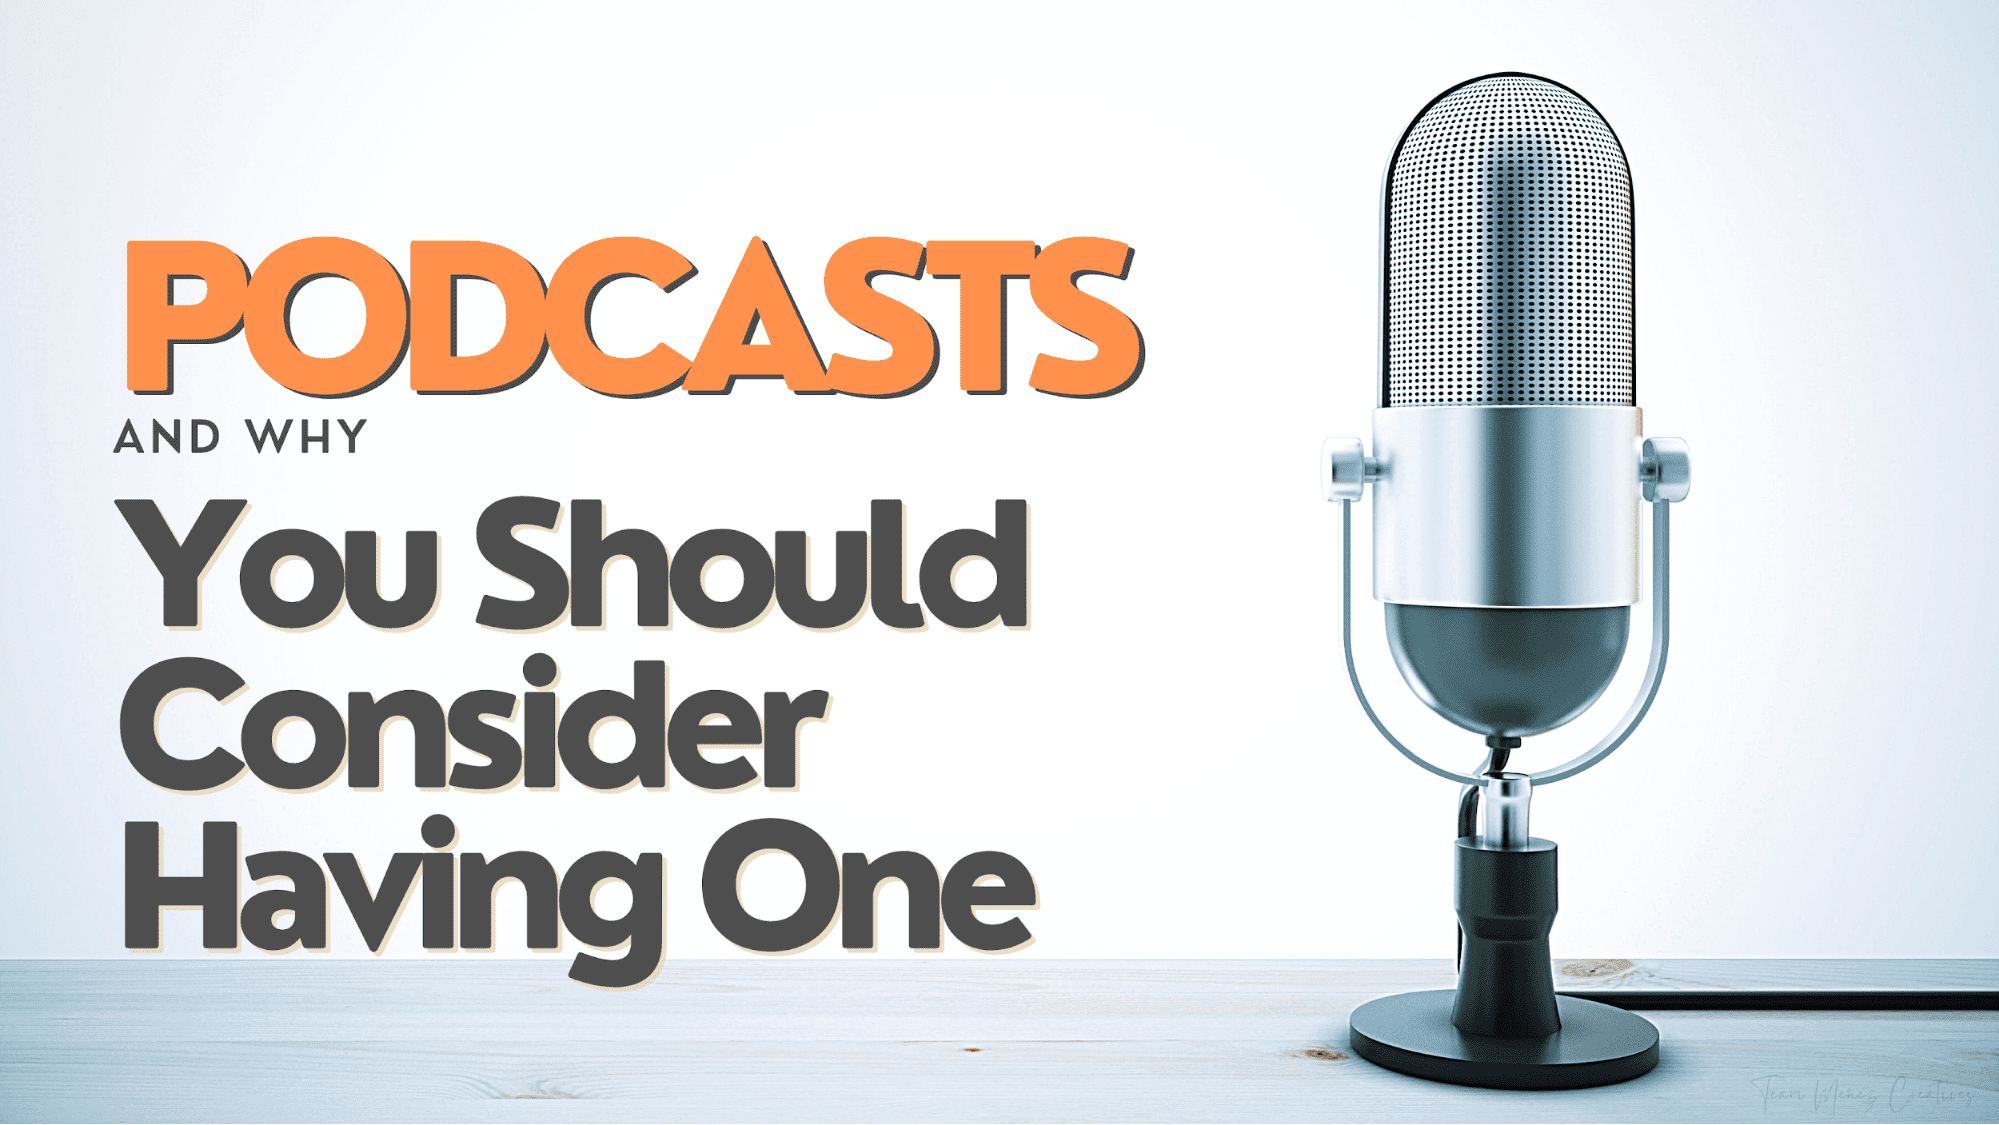 Podcast Marketing and why you should start one